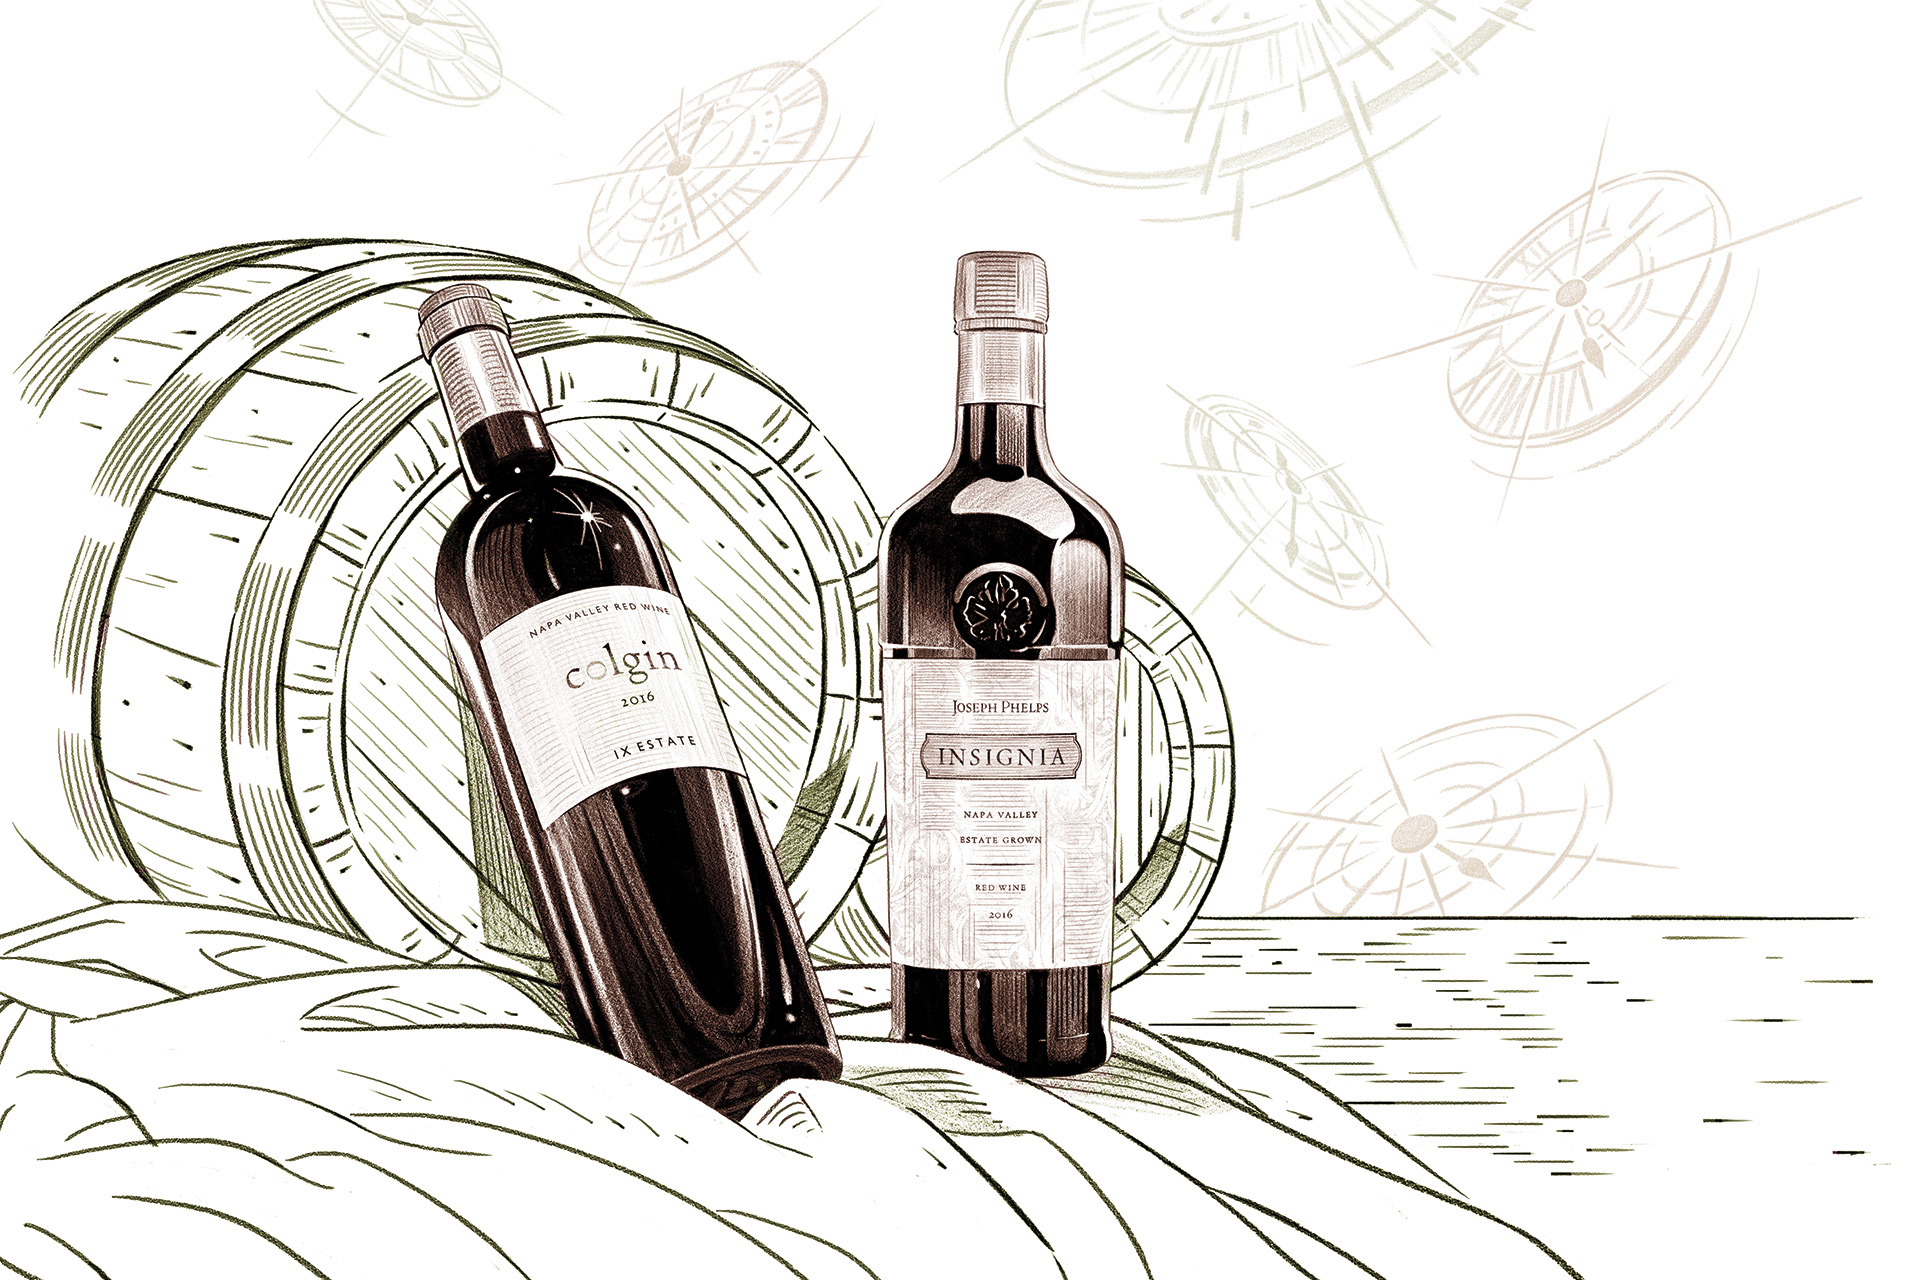 Illustration of two bottles of wine in front of a barrel